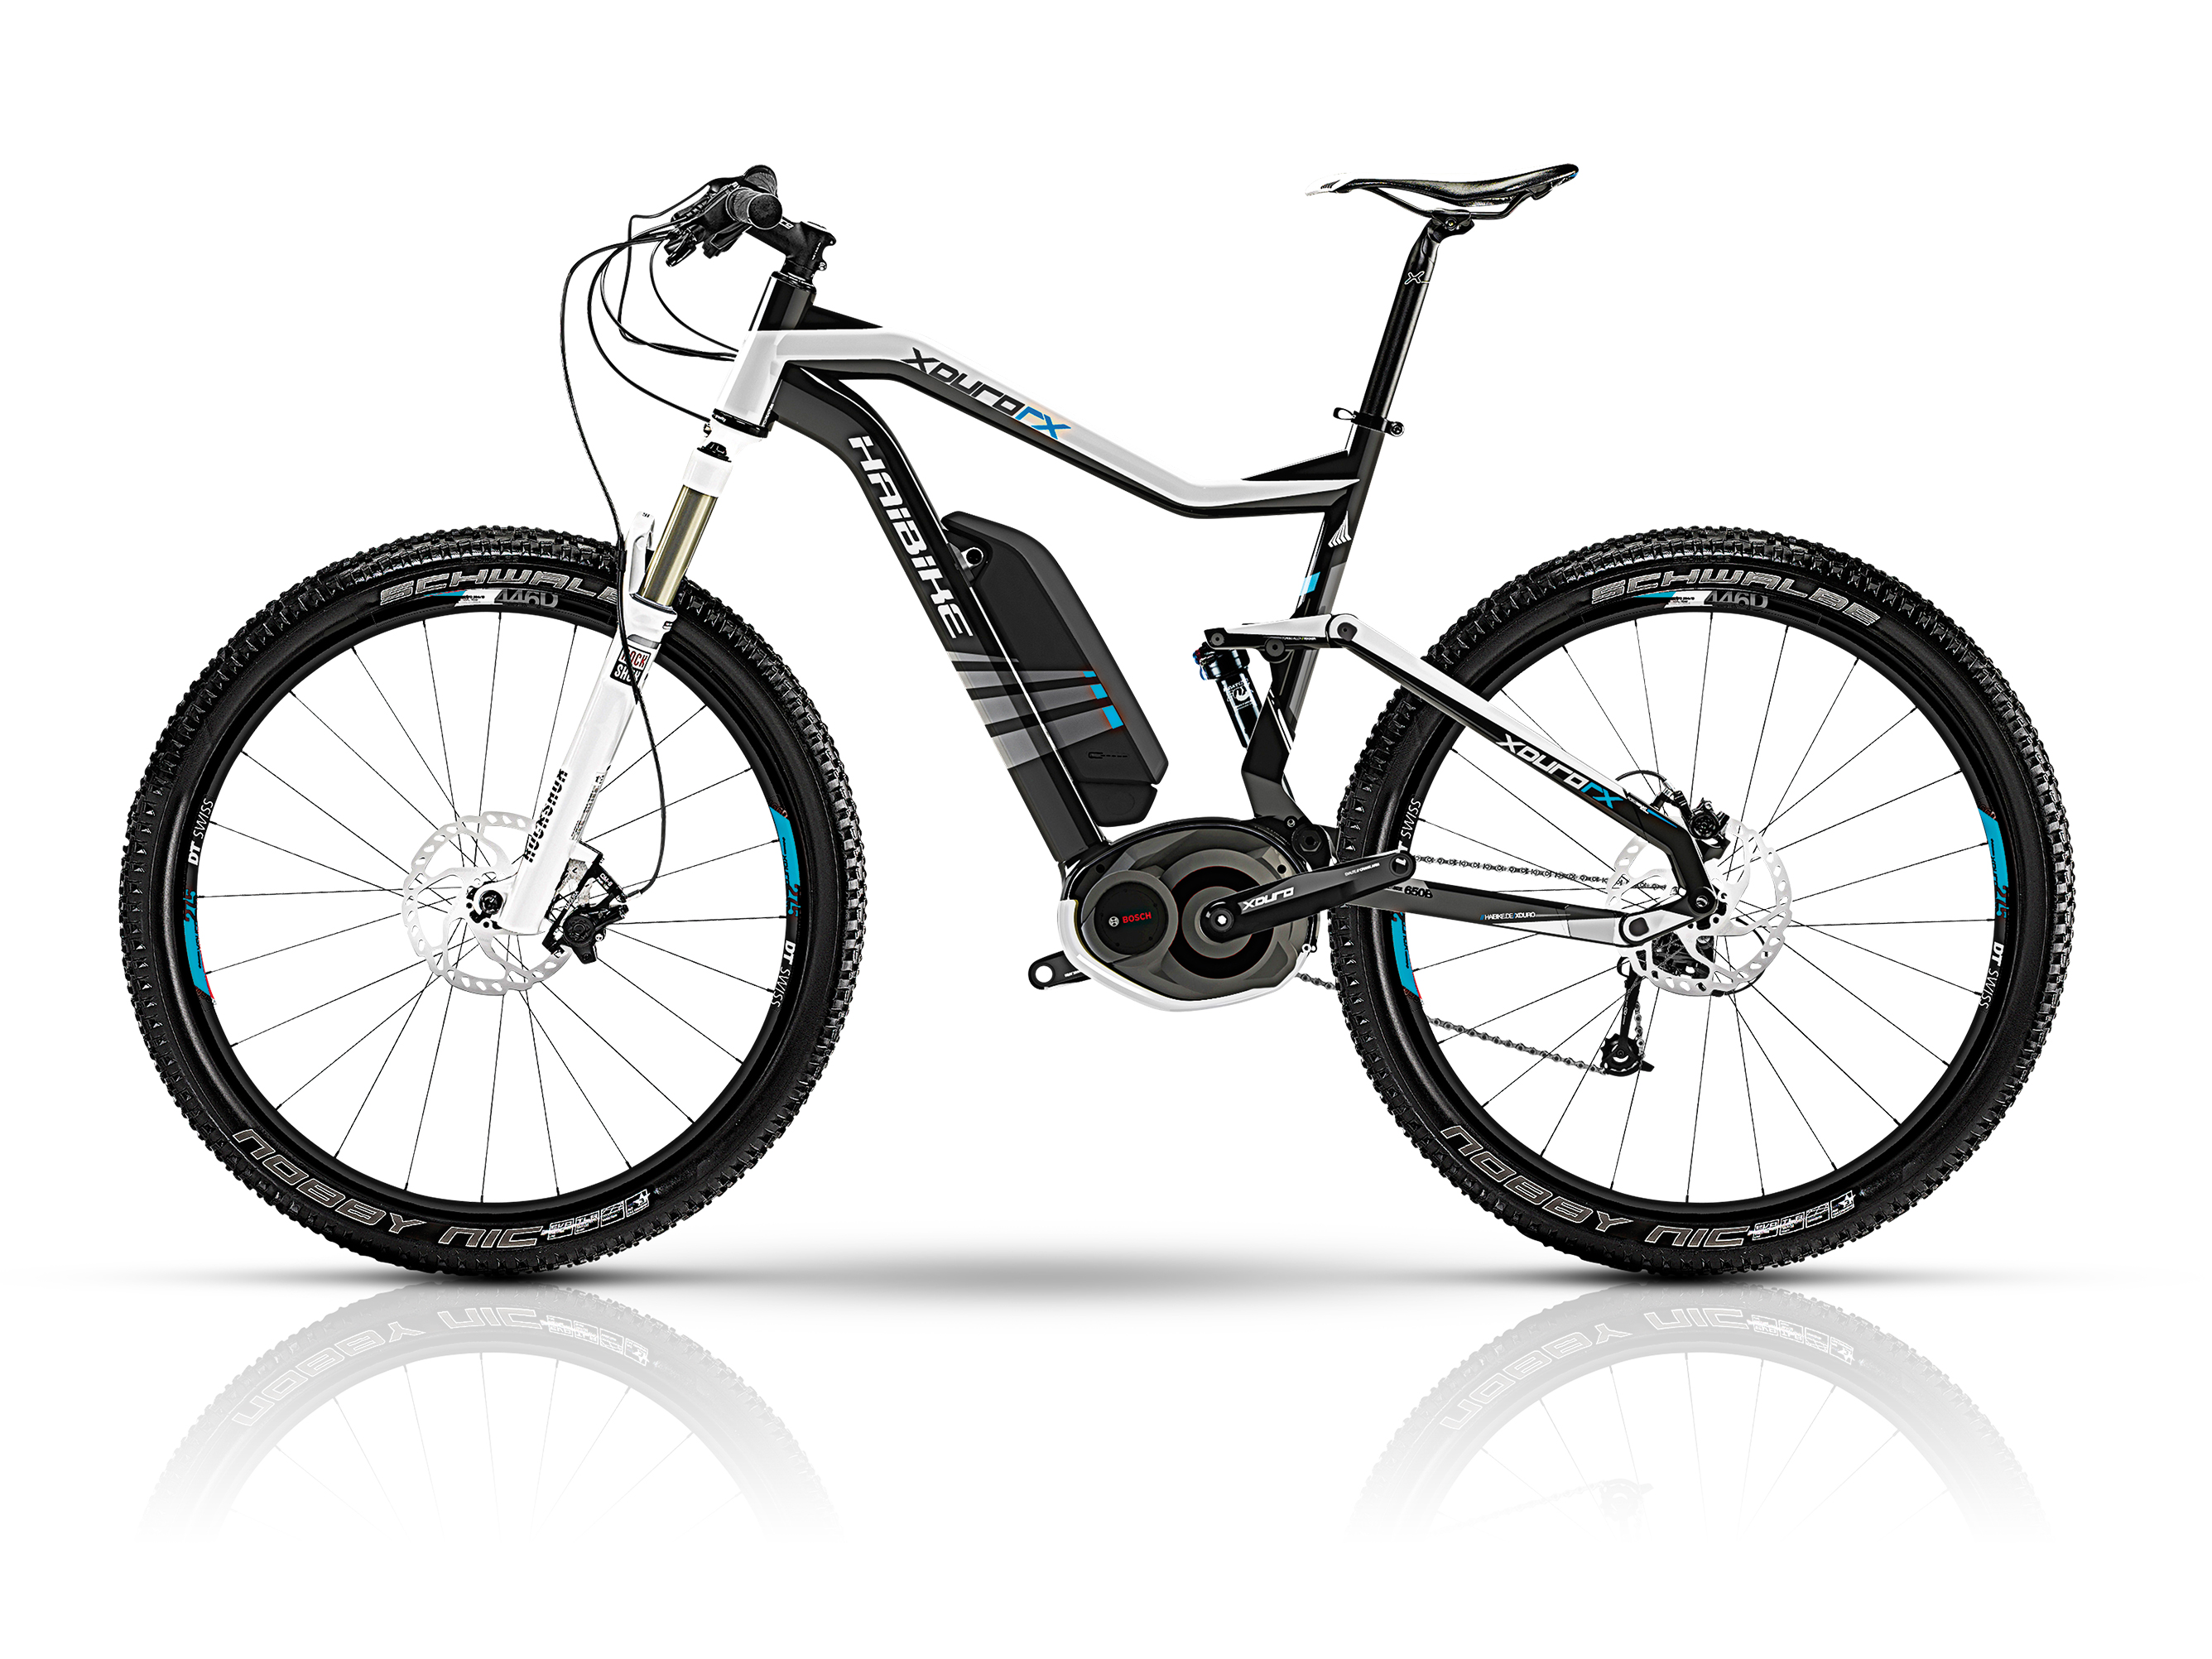 381ef76ec1d Currie Announces Awesome 2014 Ebike Line Up | ELECTRICBIKE.COM